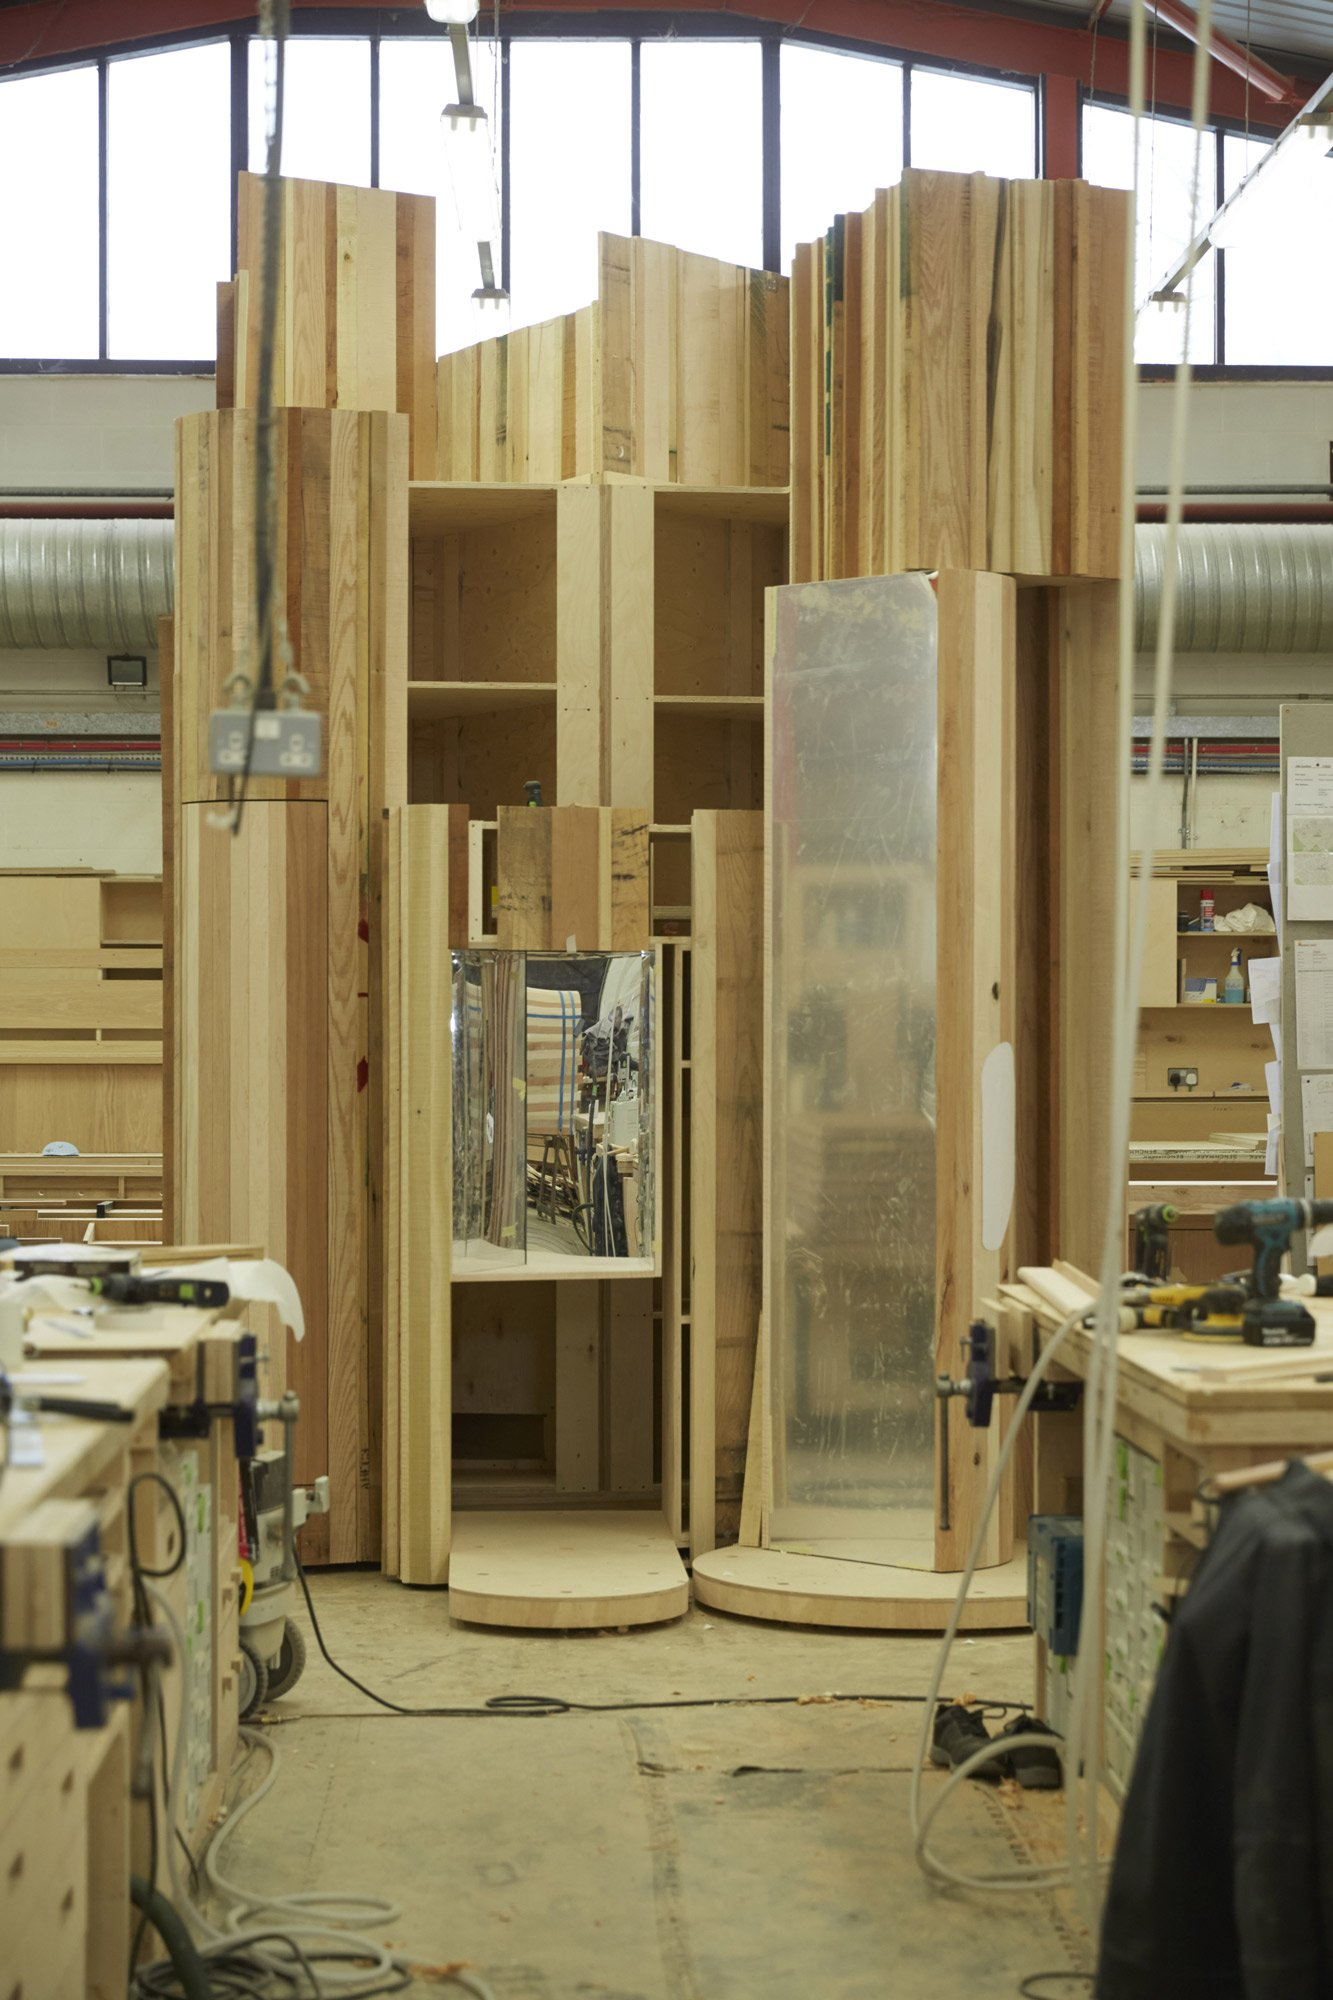 Too Good To Waste: One of the four components, under construction, in the Benchmark workshop © Jon Cardwel